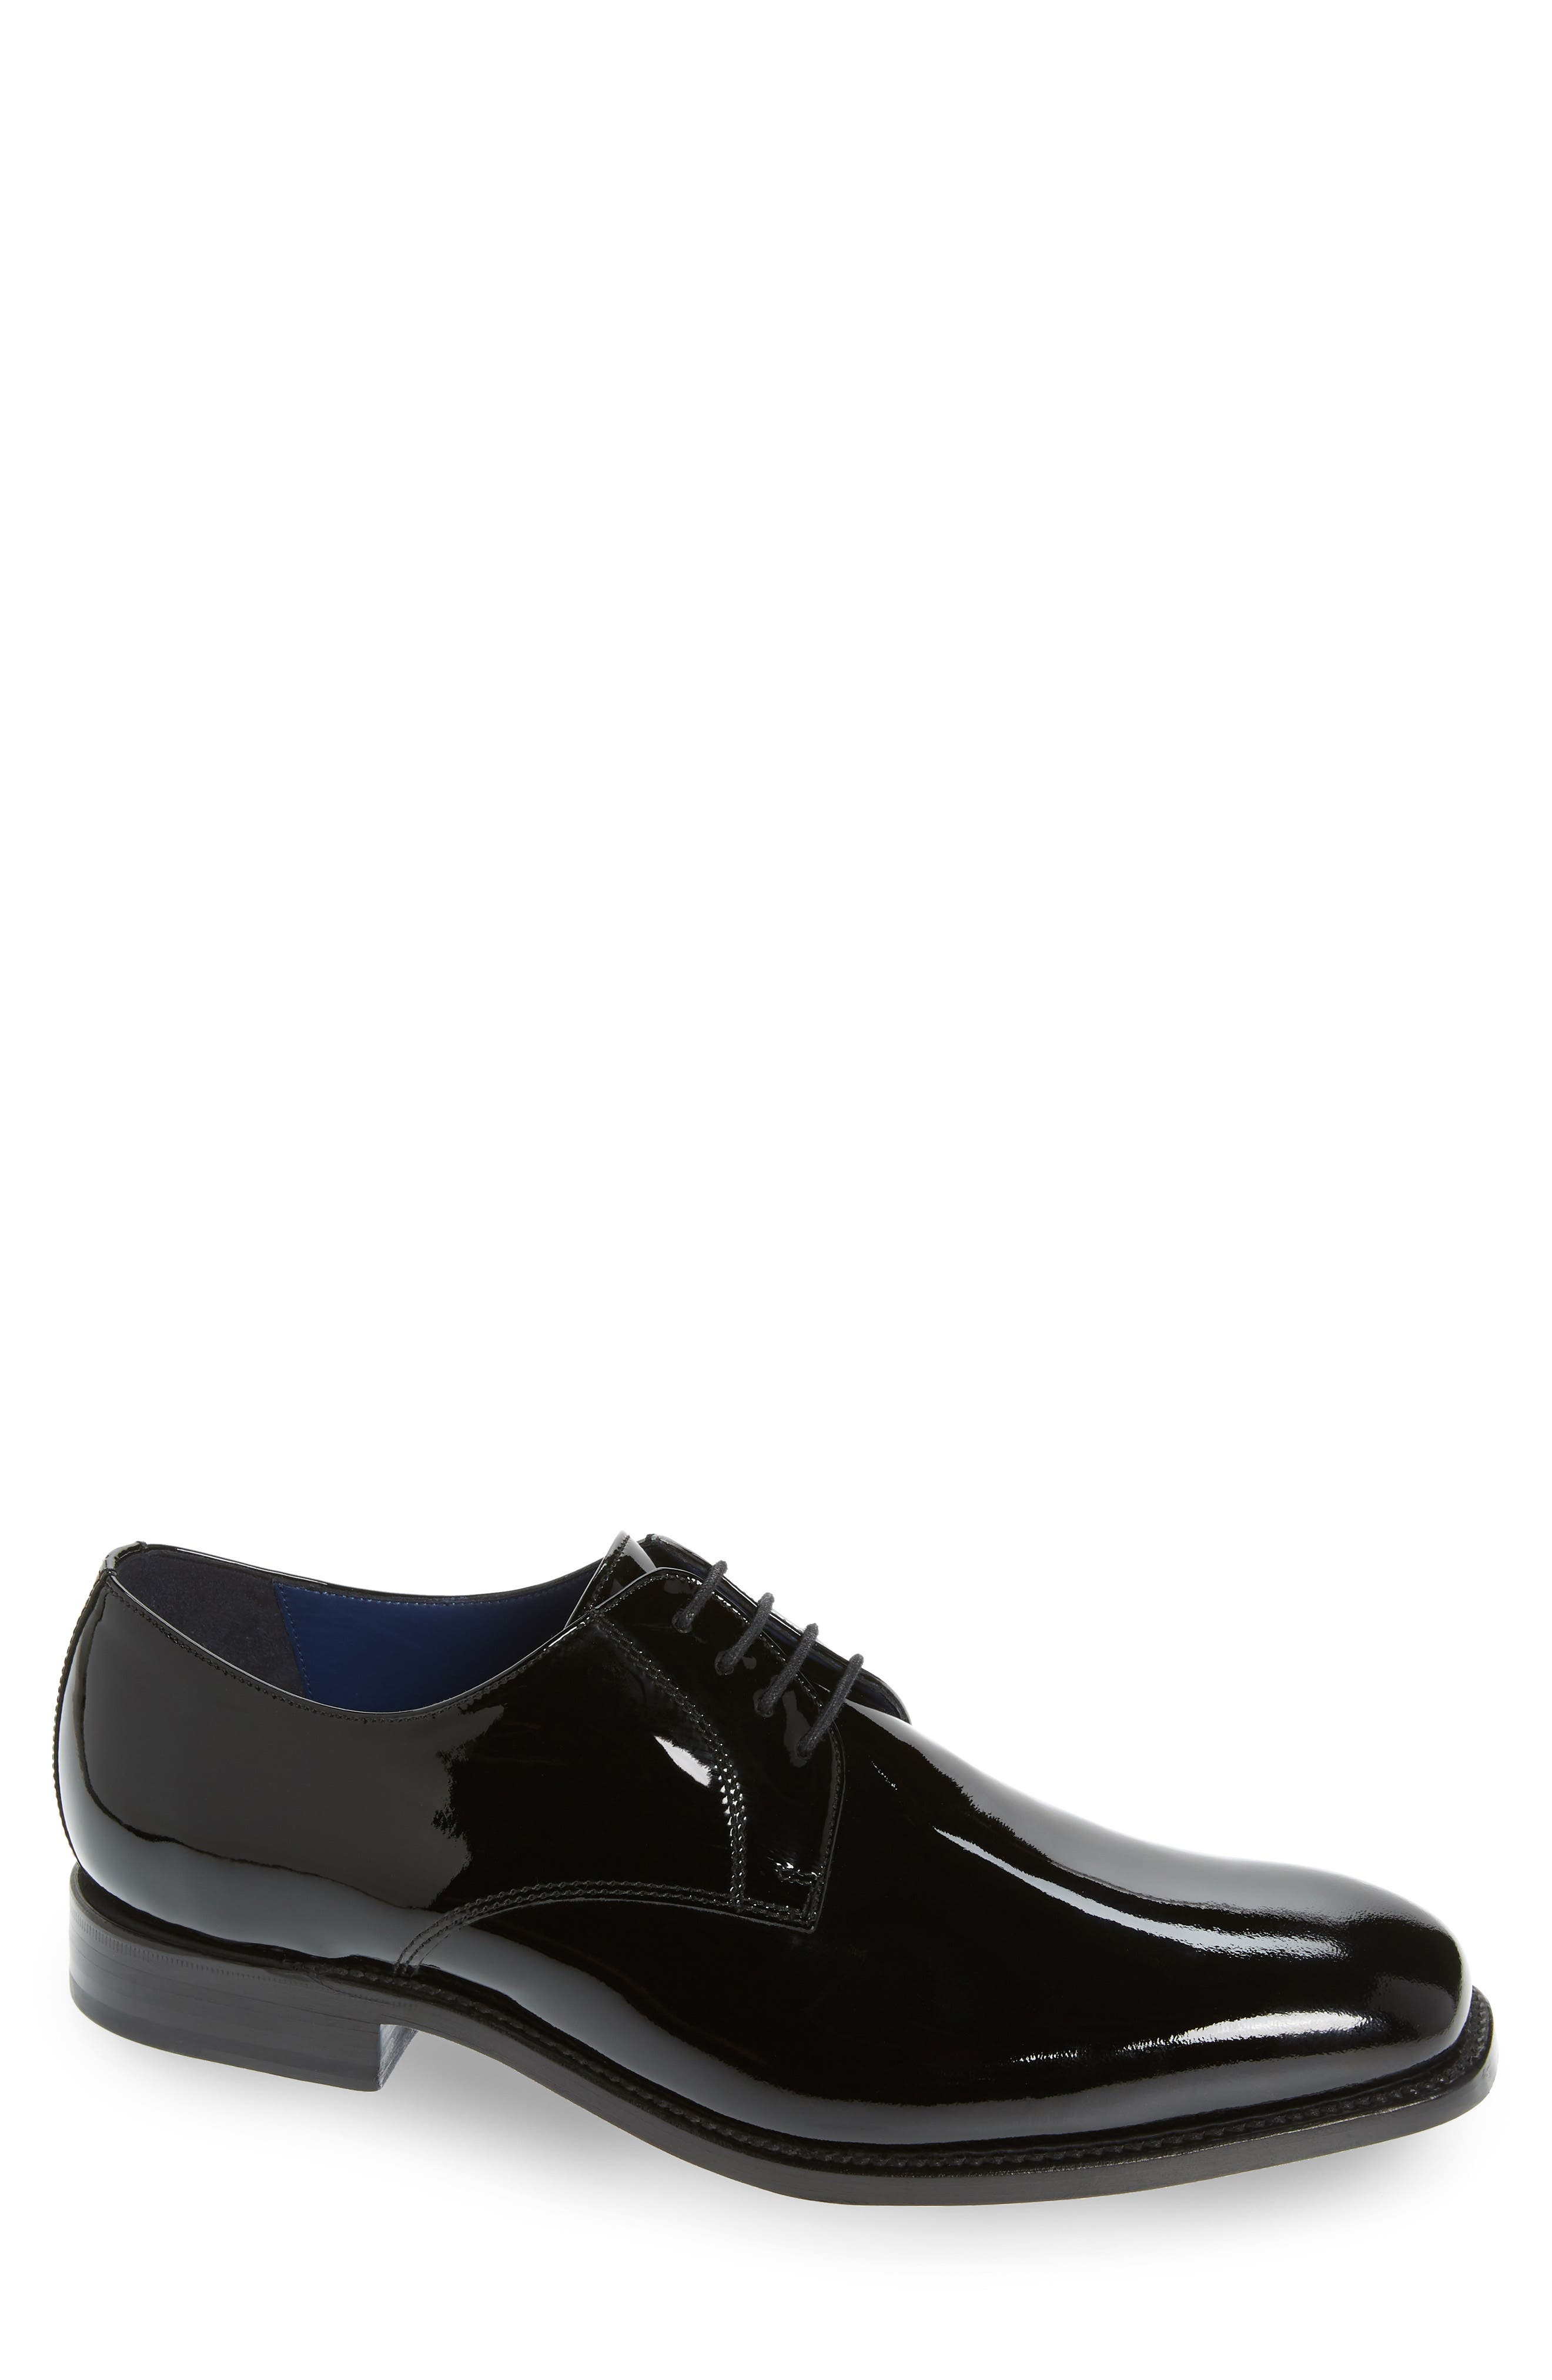 Alameda Plain Toe Derby,                         Main,                         color, BLACK PATENT LEATHER